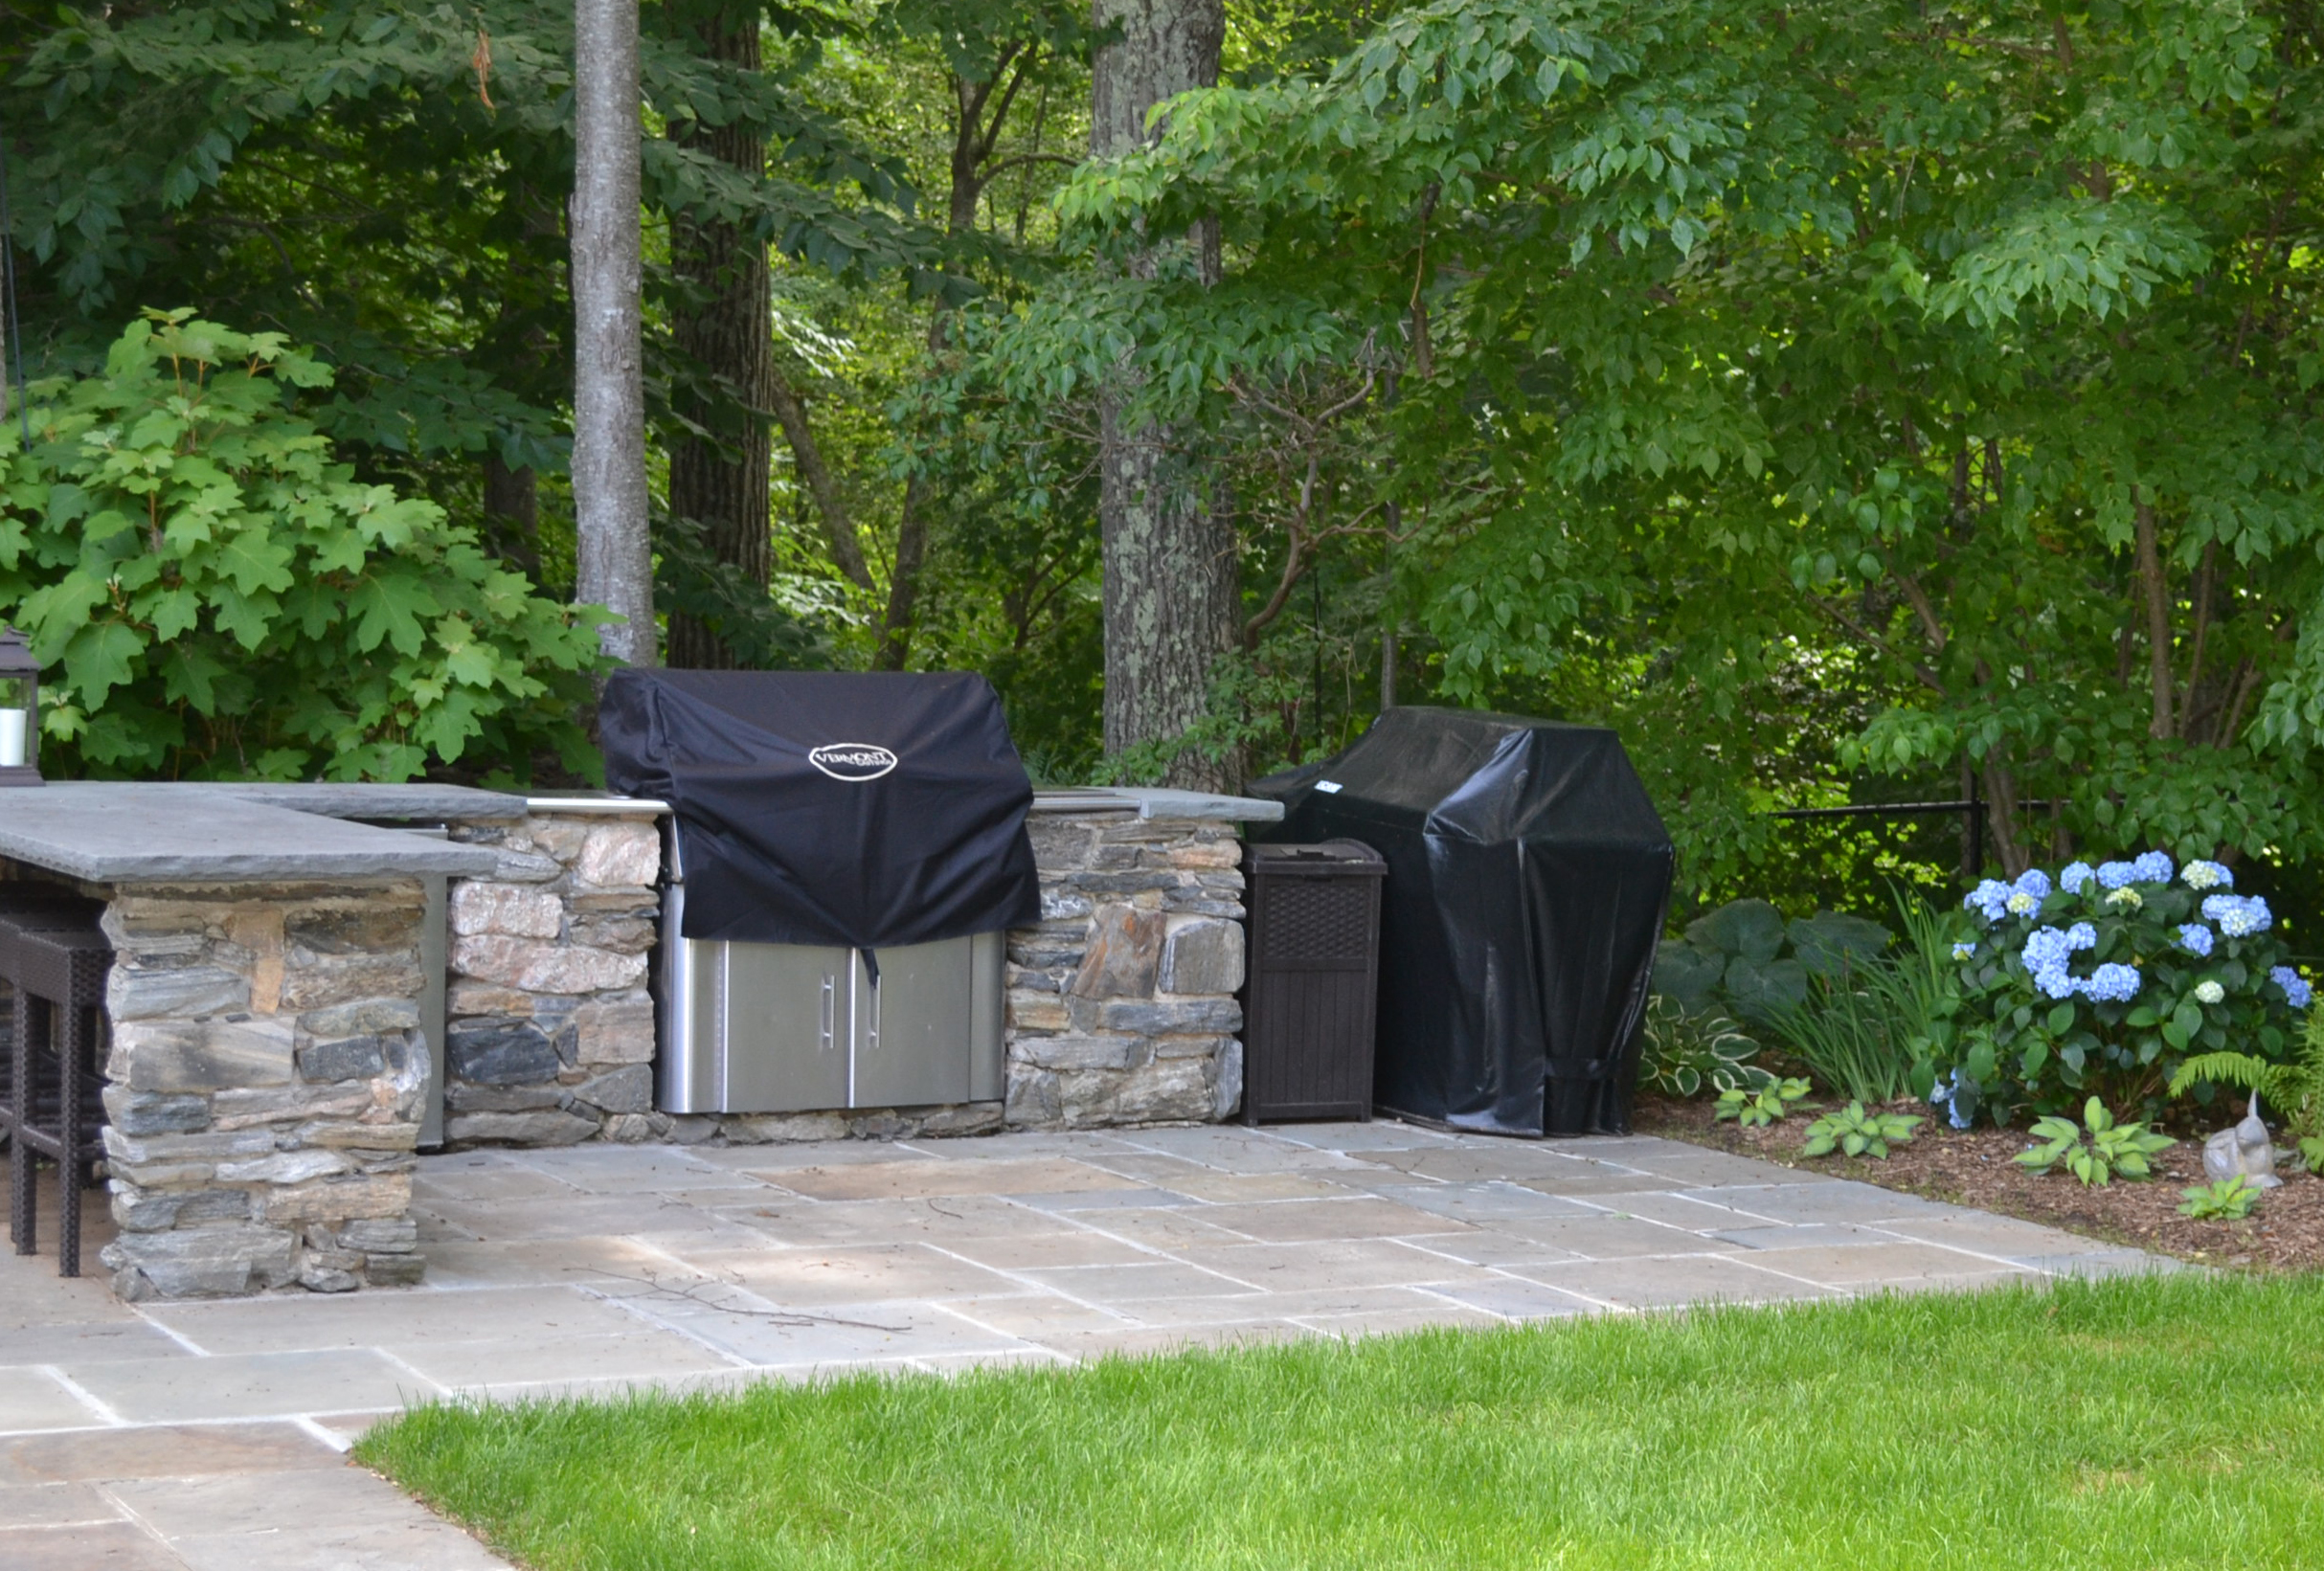 4_Patio and shade garden outdoor kitchen.jpg